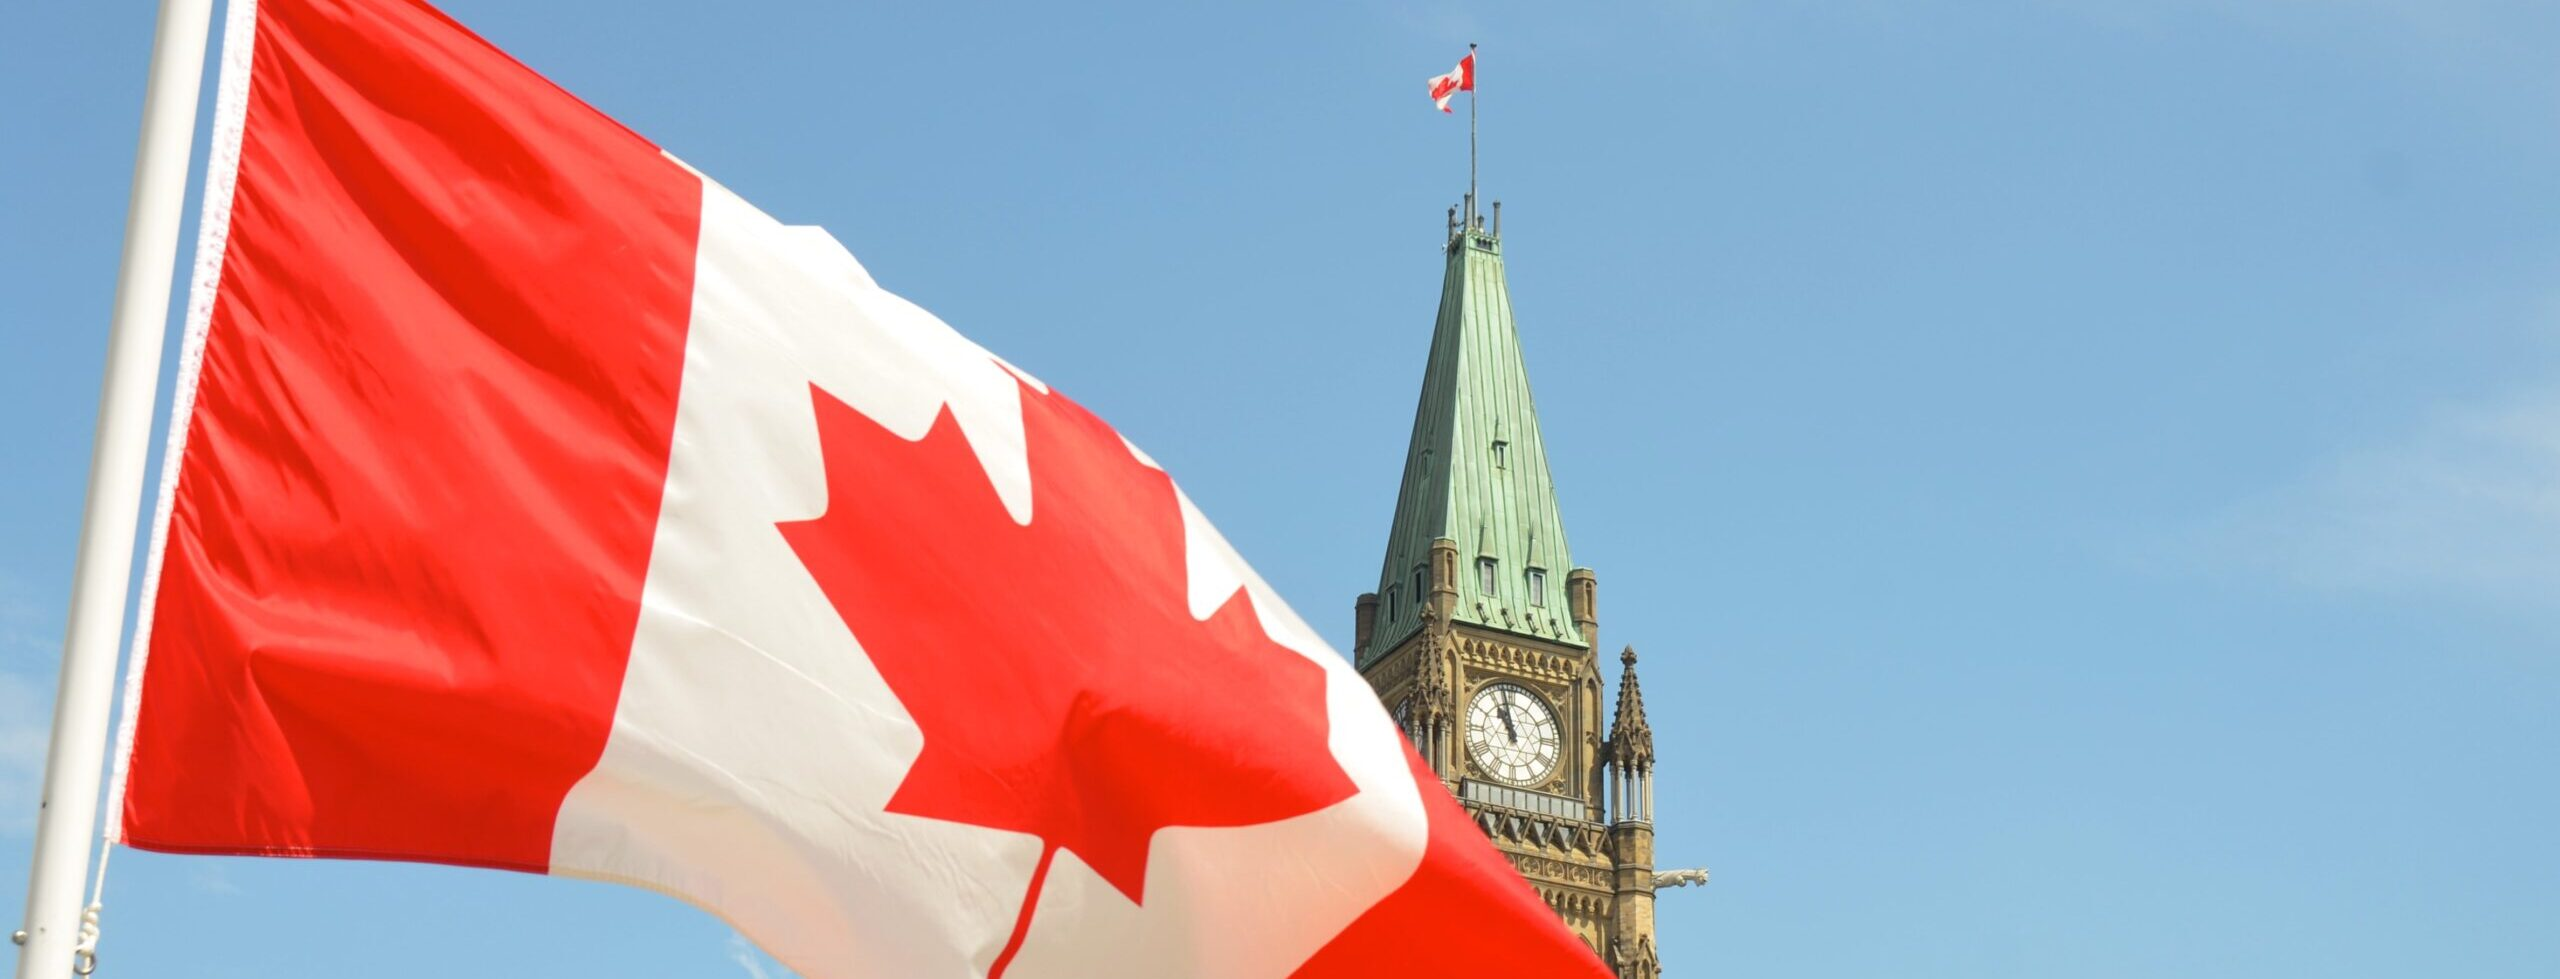 Canadian flag in front of the tower of the central block of parliament in Ottawa